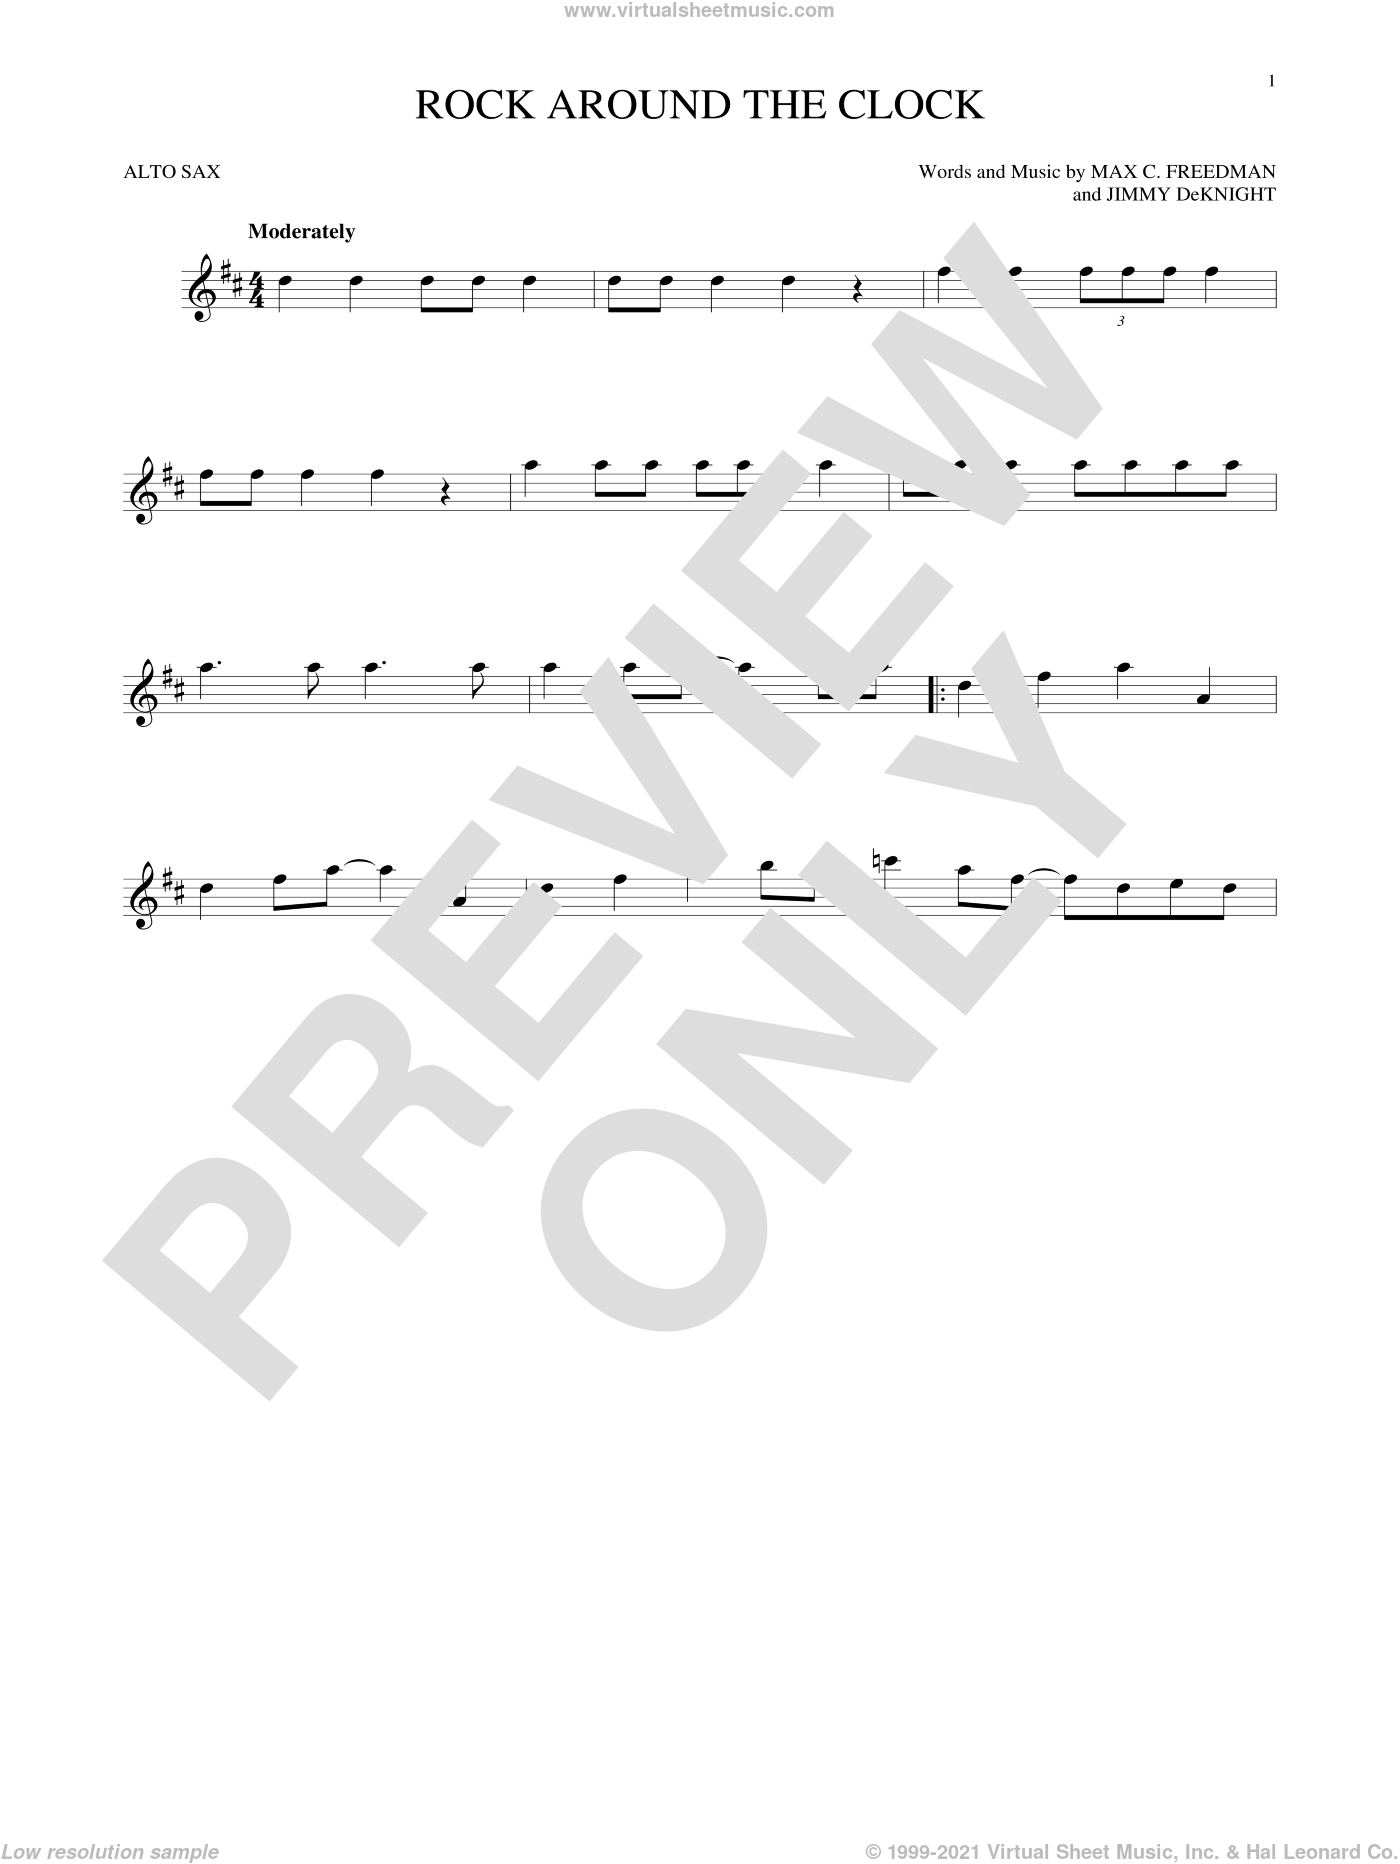 Rock Around The Clock sheet music for alto saxophone solo by Bill Haley & His Comets, Jimmy DeKnight and Max C. Freedman, intermediate